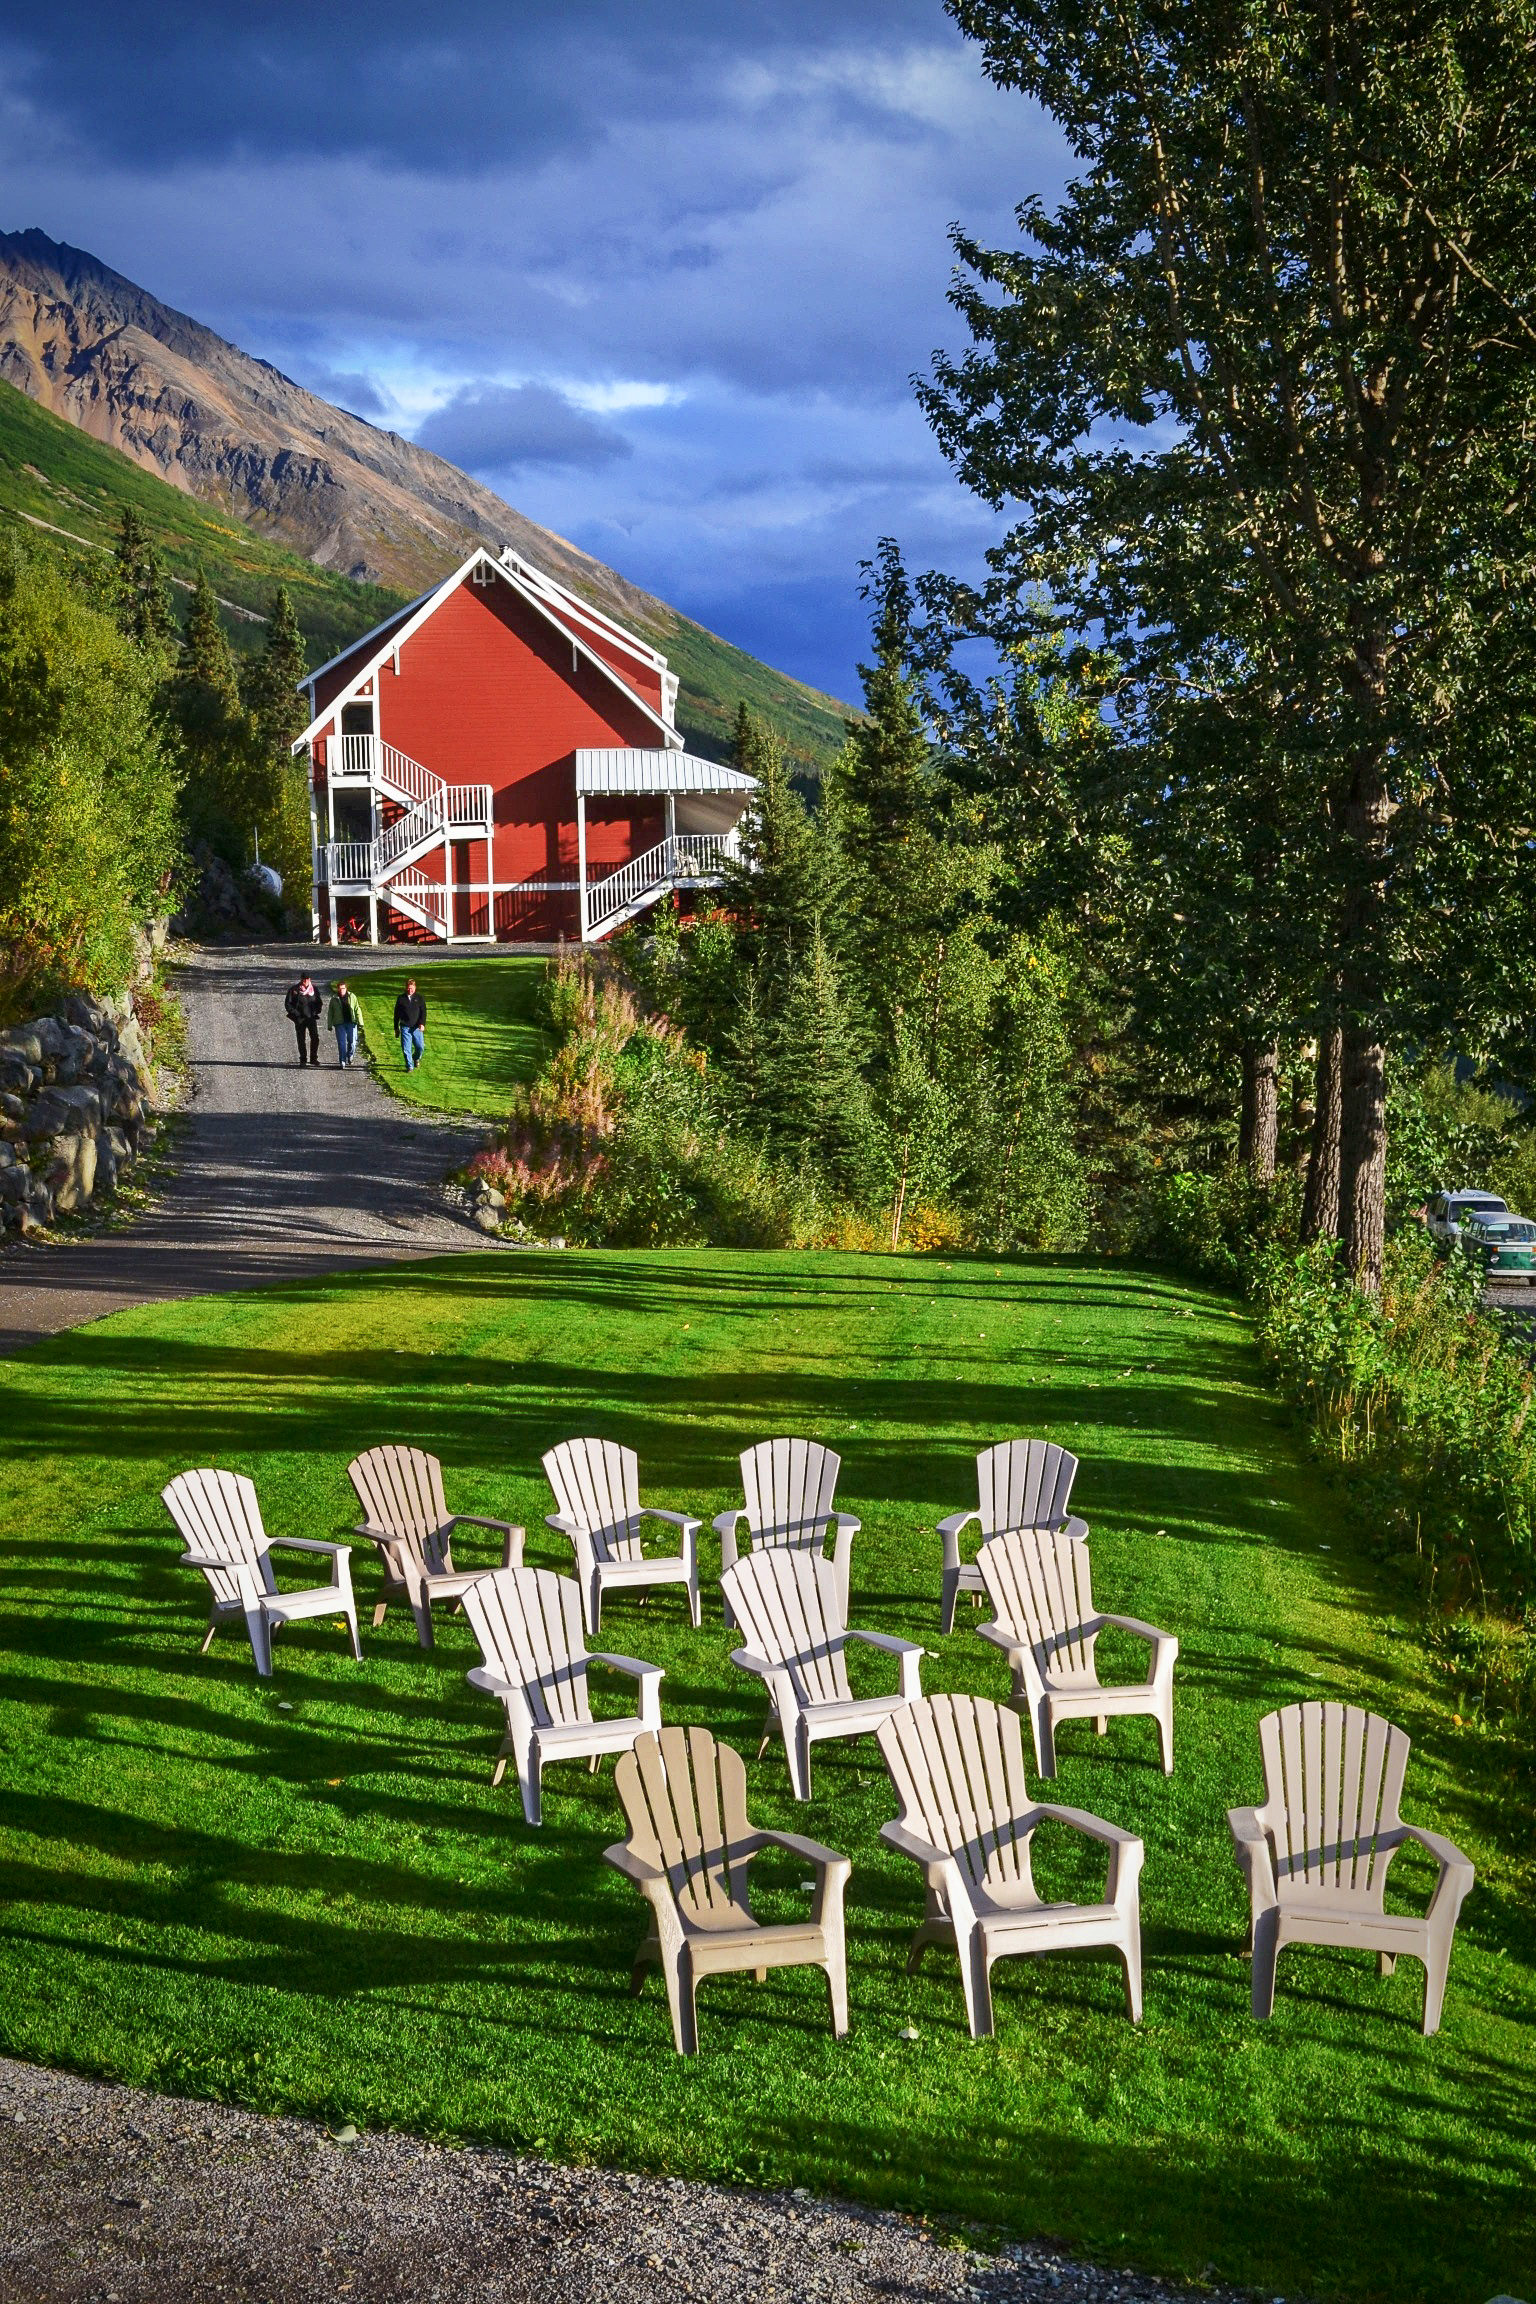 Historic Day-Trip: Kennicott Glacier Lodge Lawn - Great with a Beer or Wine in the Afternoon